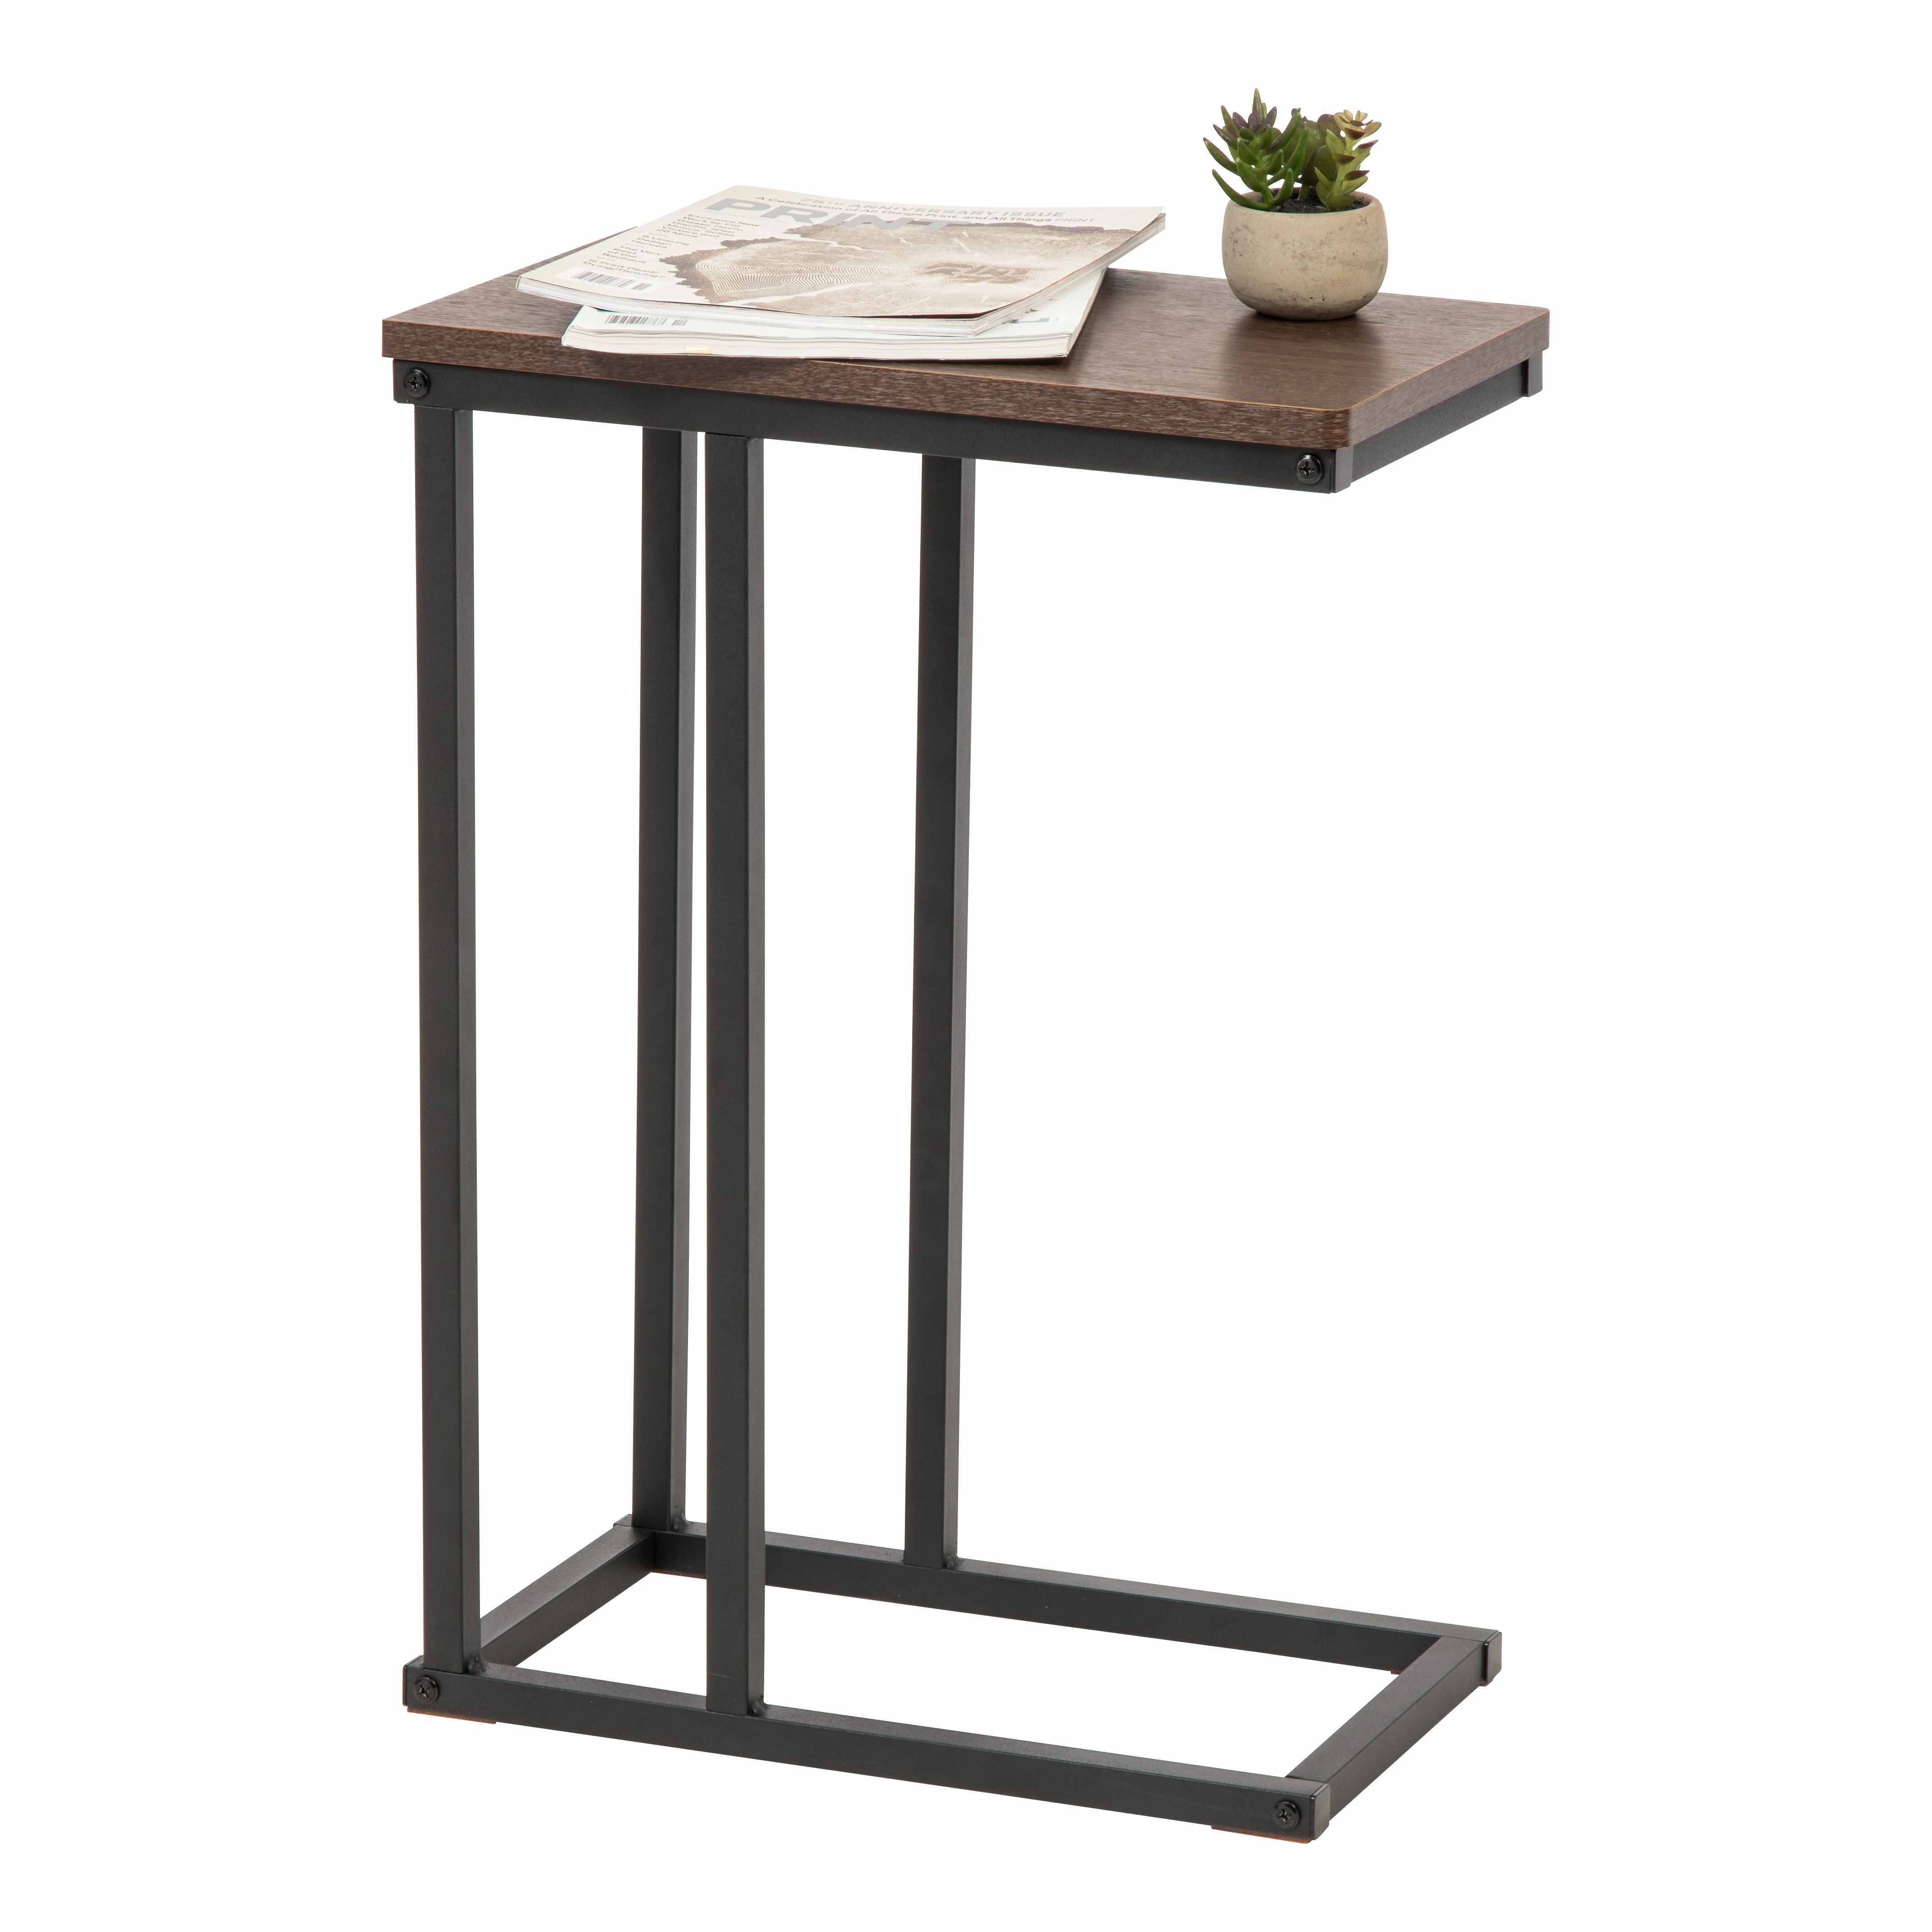 Modern C-shaped Tea Table End Table Home Office Coffee Tables Magazine Shelf Small Sofa Side Table Living Room Furniture